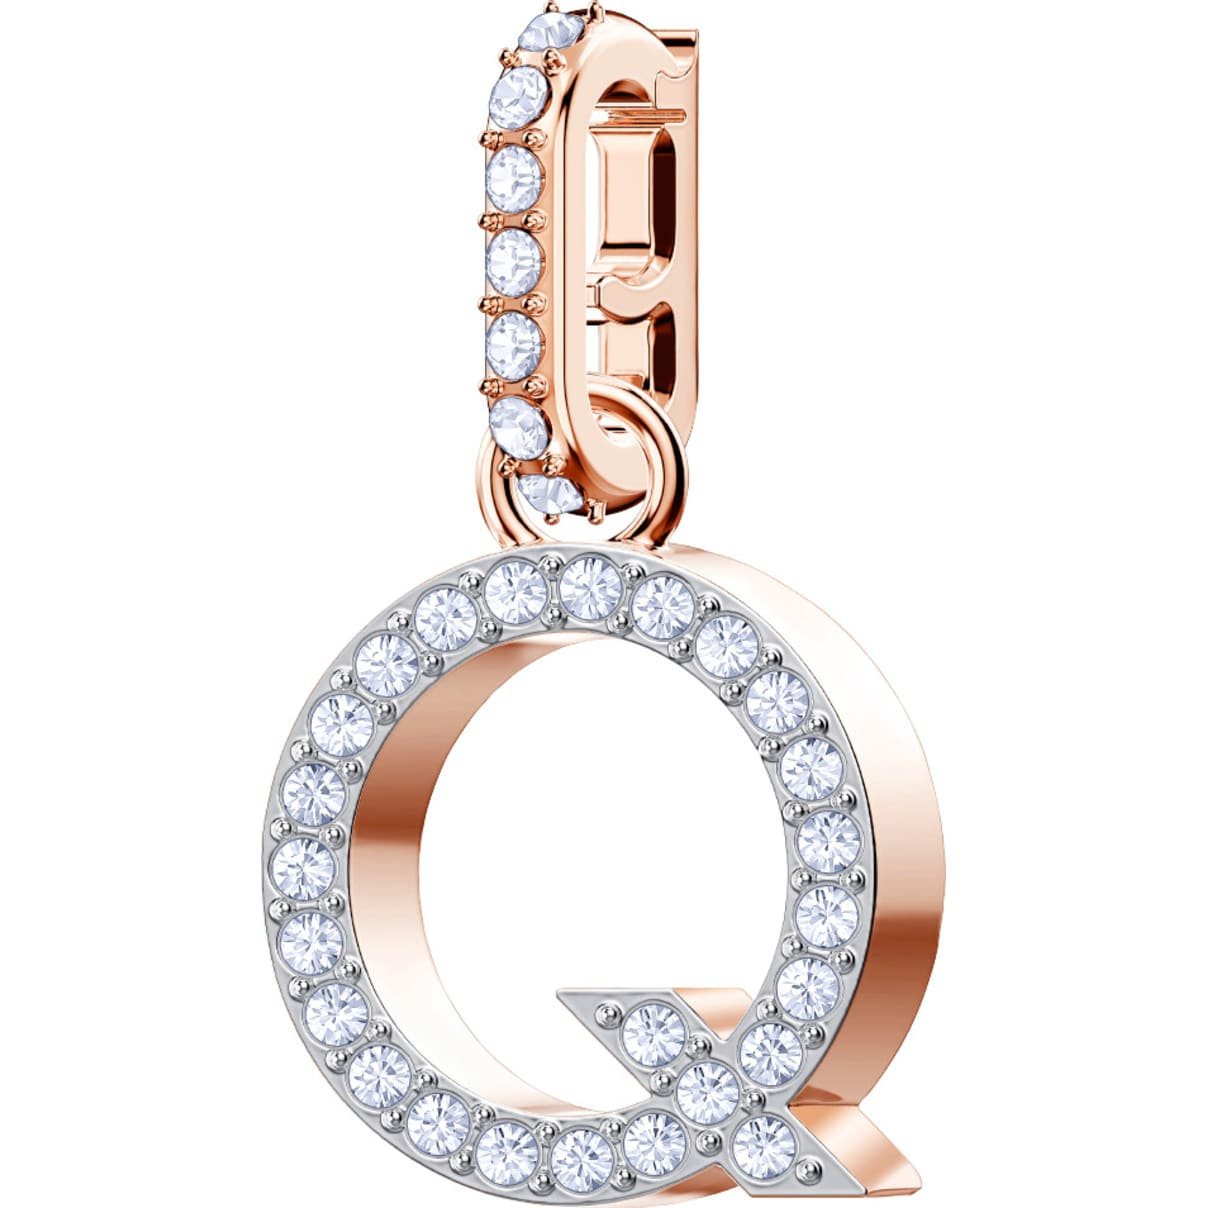 Swarovski Swarovski Remix Collection Charm Q, White, Rose-gold tone plated